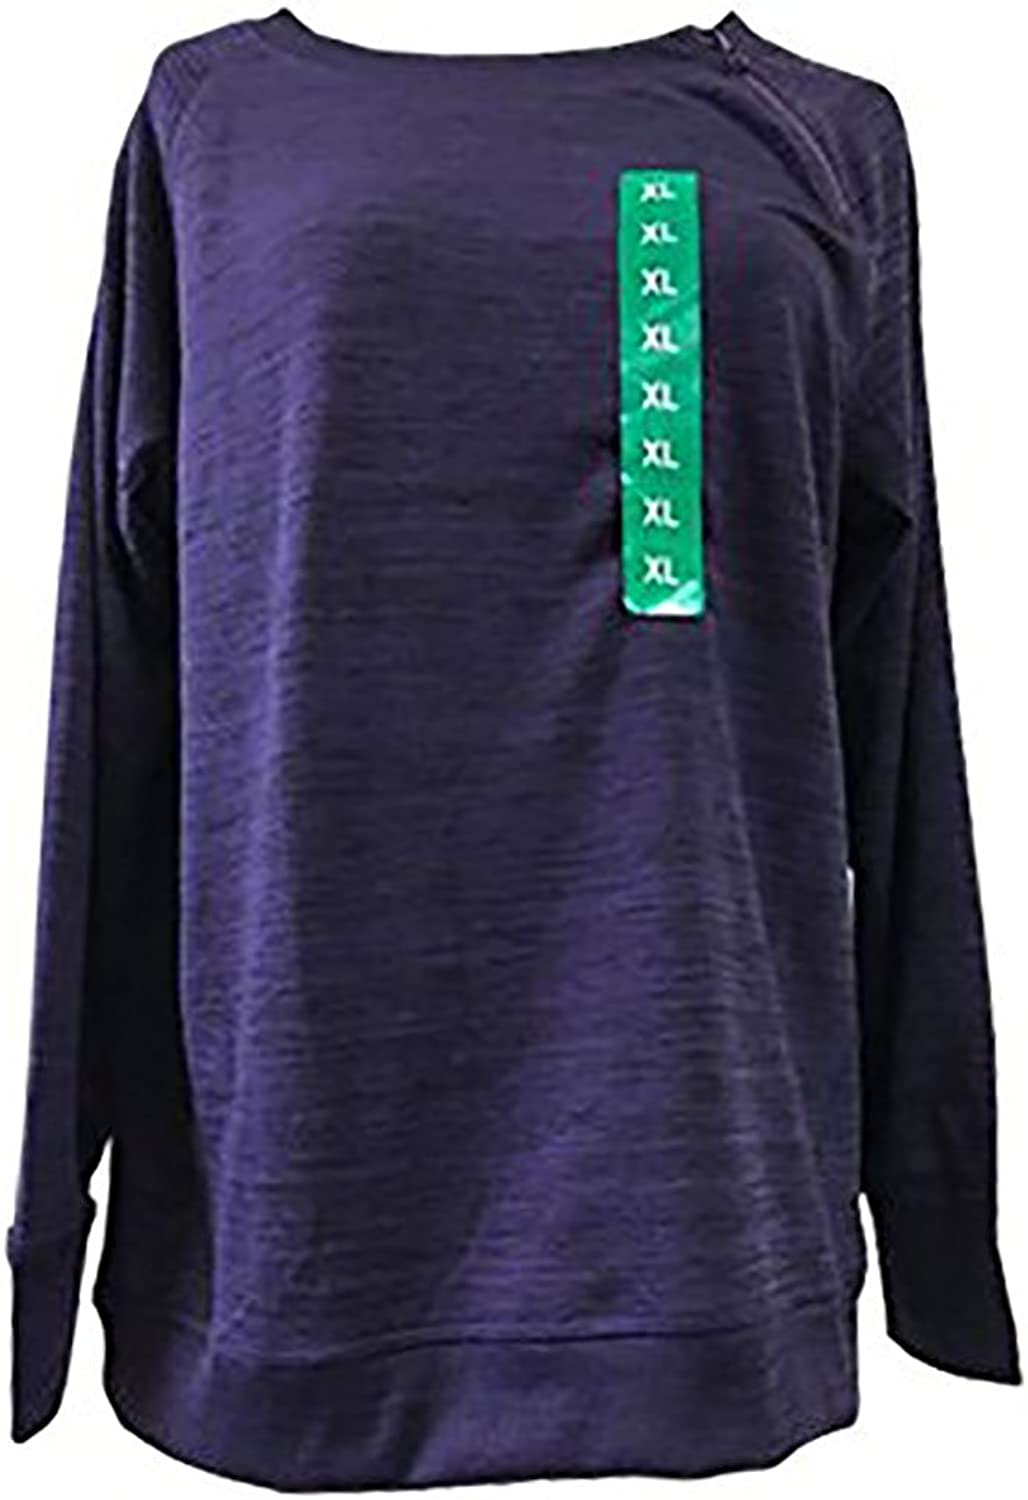 Gerry Journey Women's Zip Neck Long Sleeve Shirt. color Purple. Size  XXLarge.